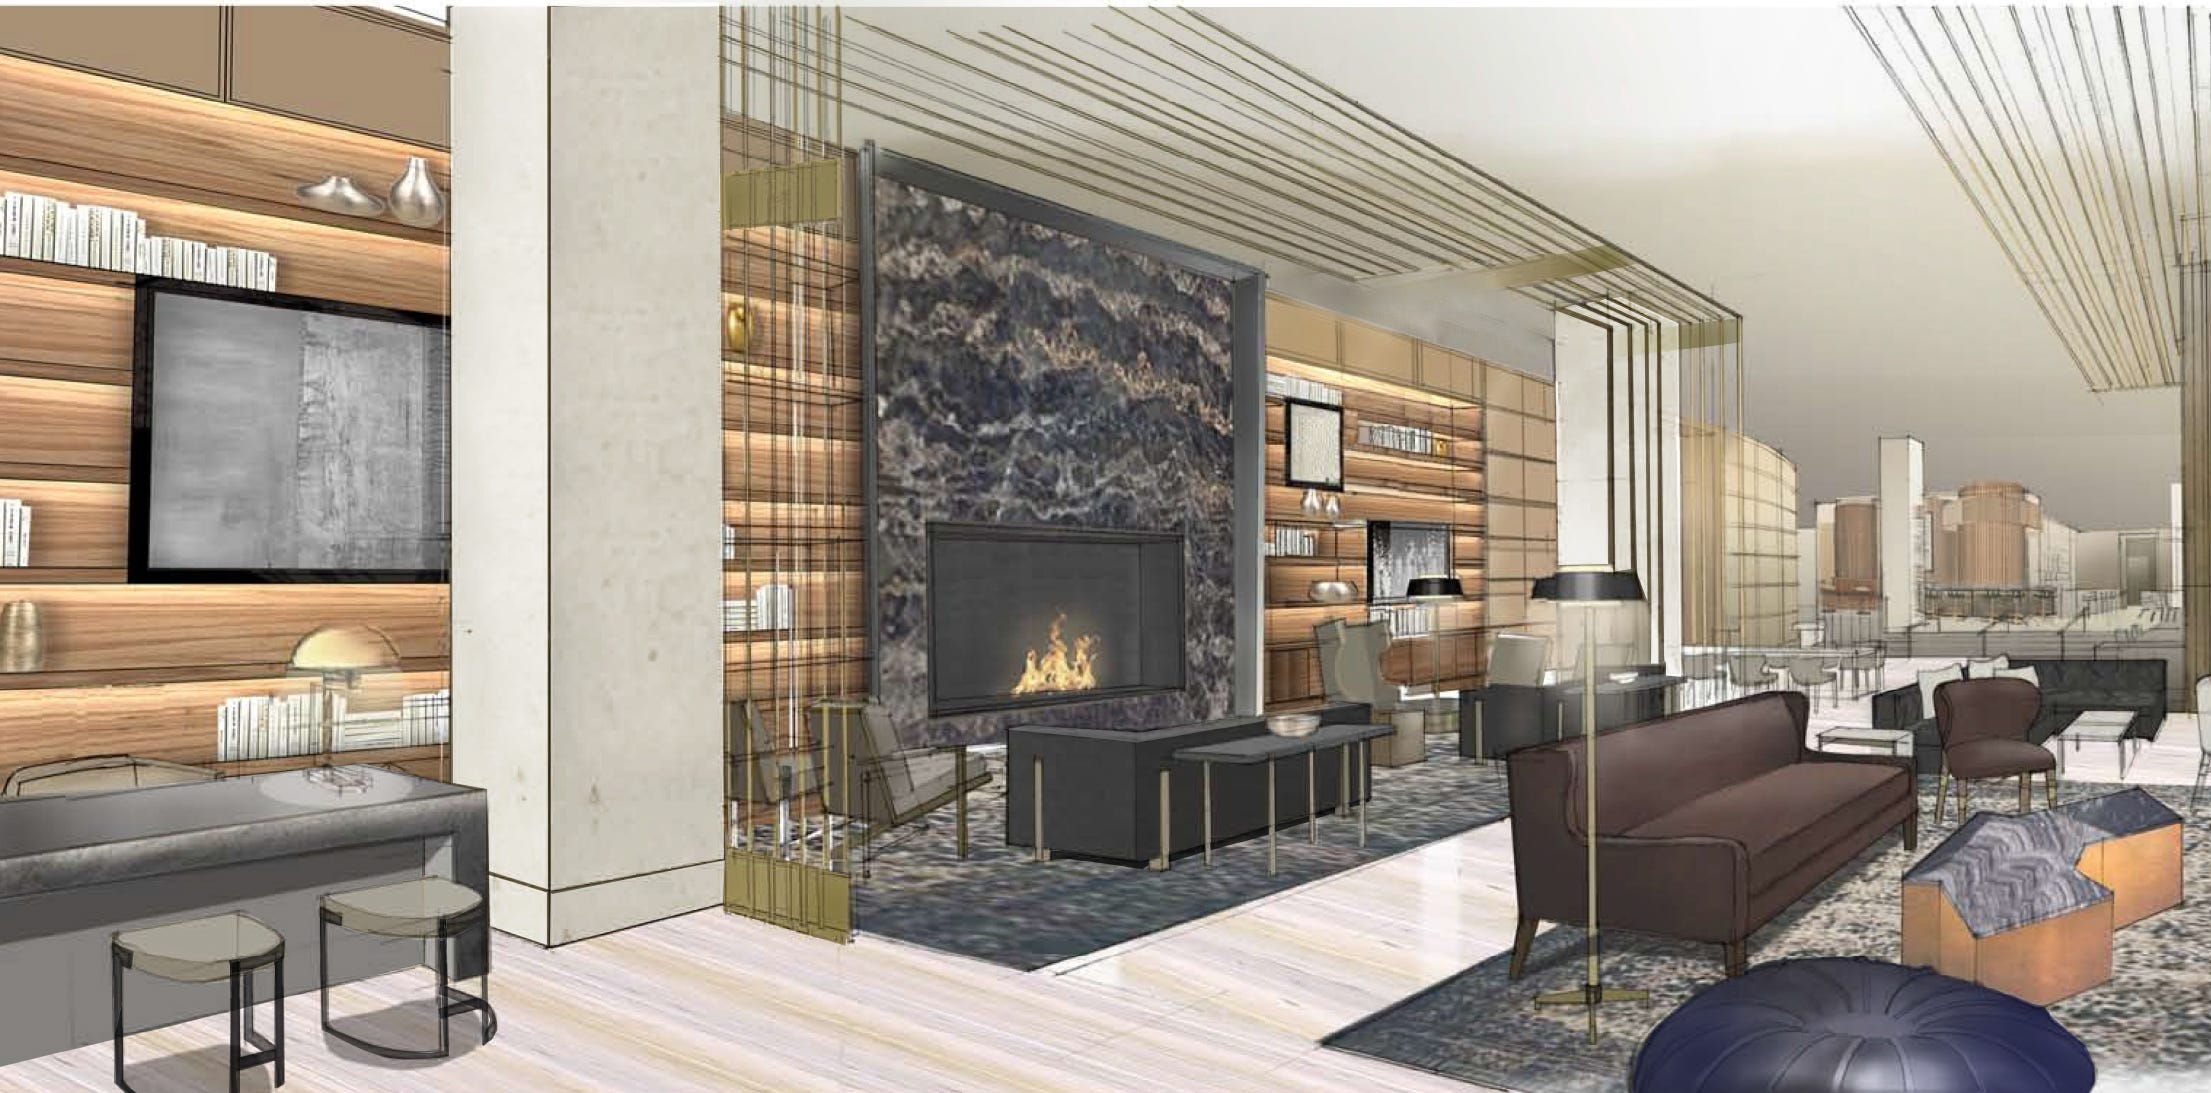 Inside View: Interior Design Unveiled For New JW Marriott Nashville Hotel